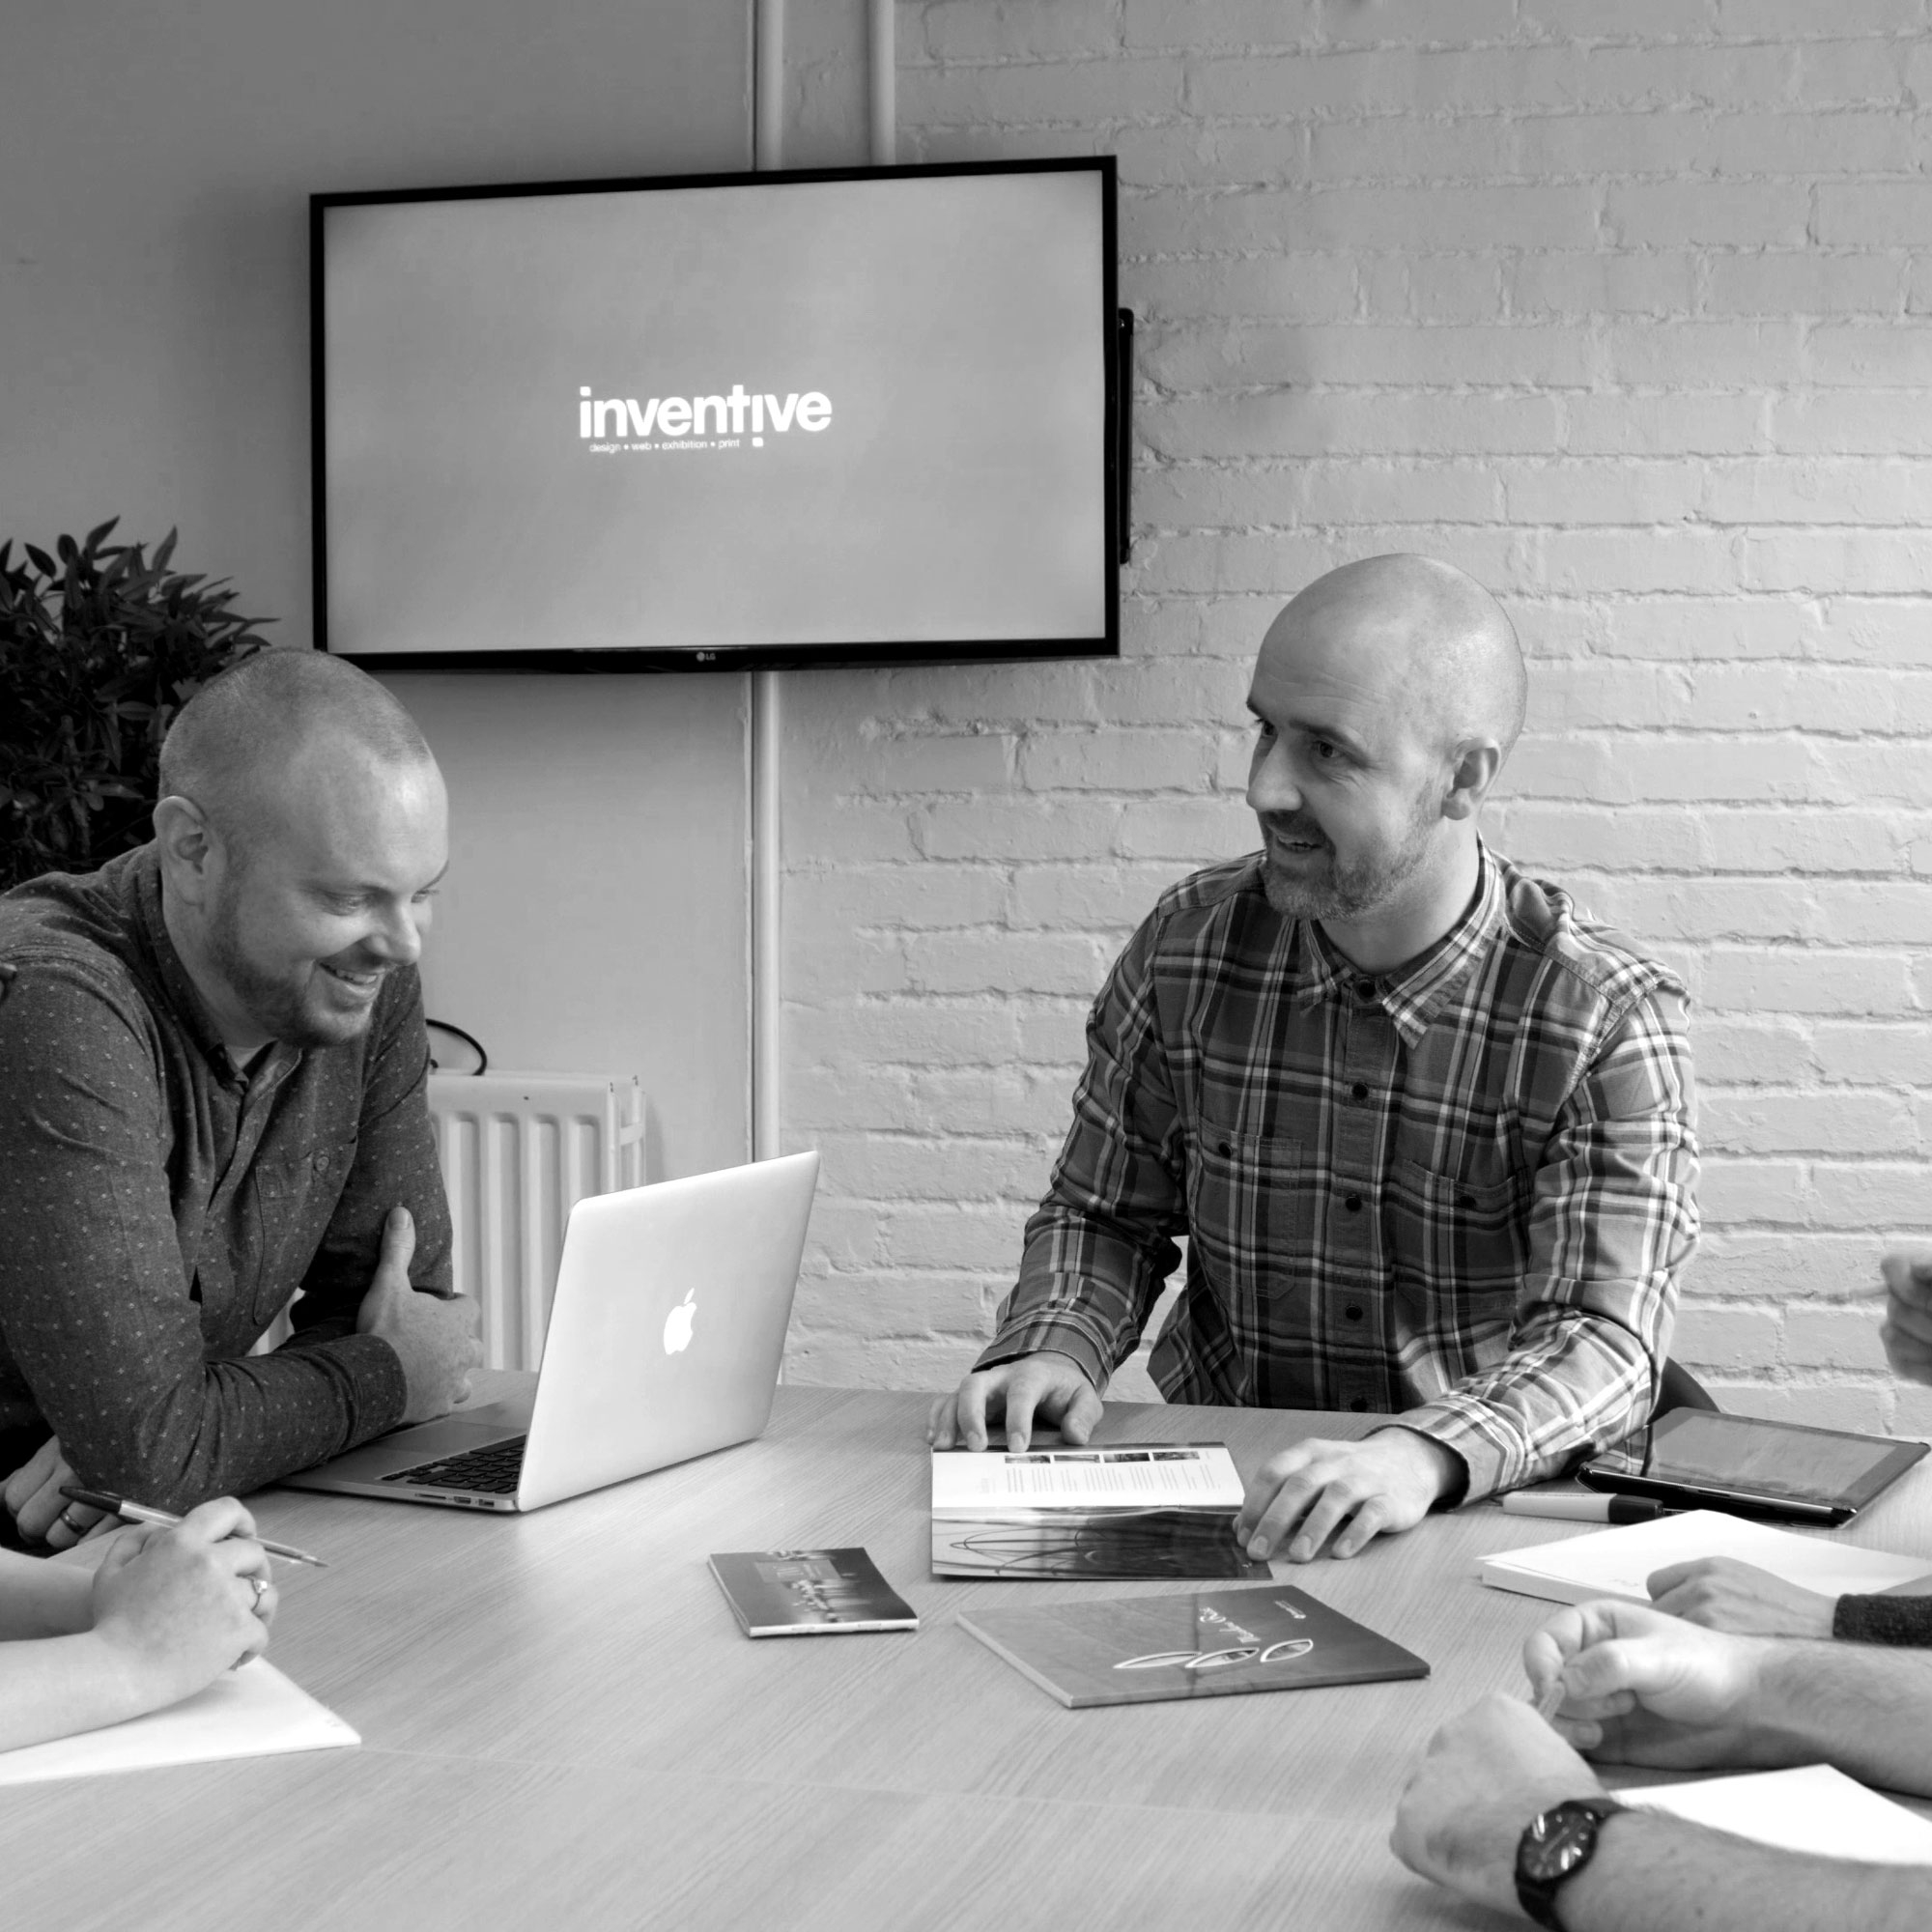 Inventive has over 12 years of brochure design and print management